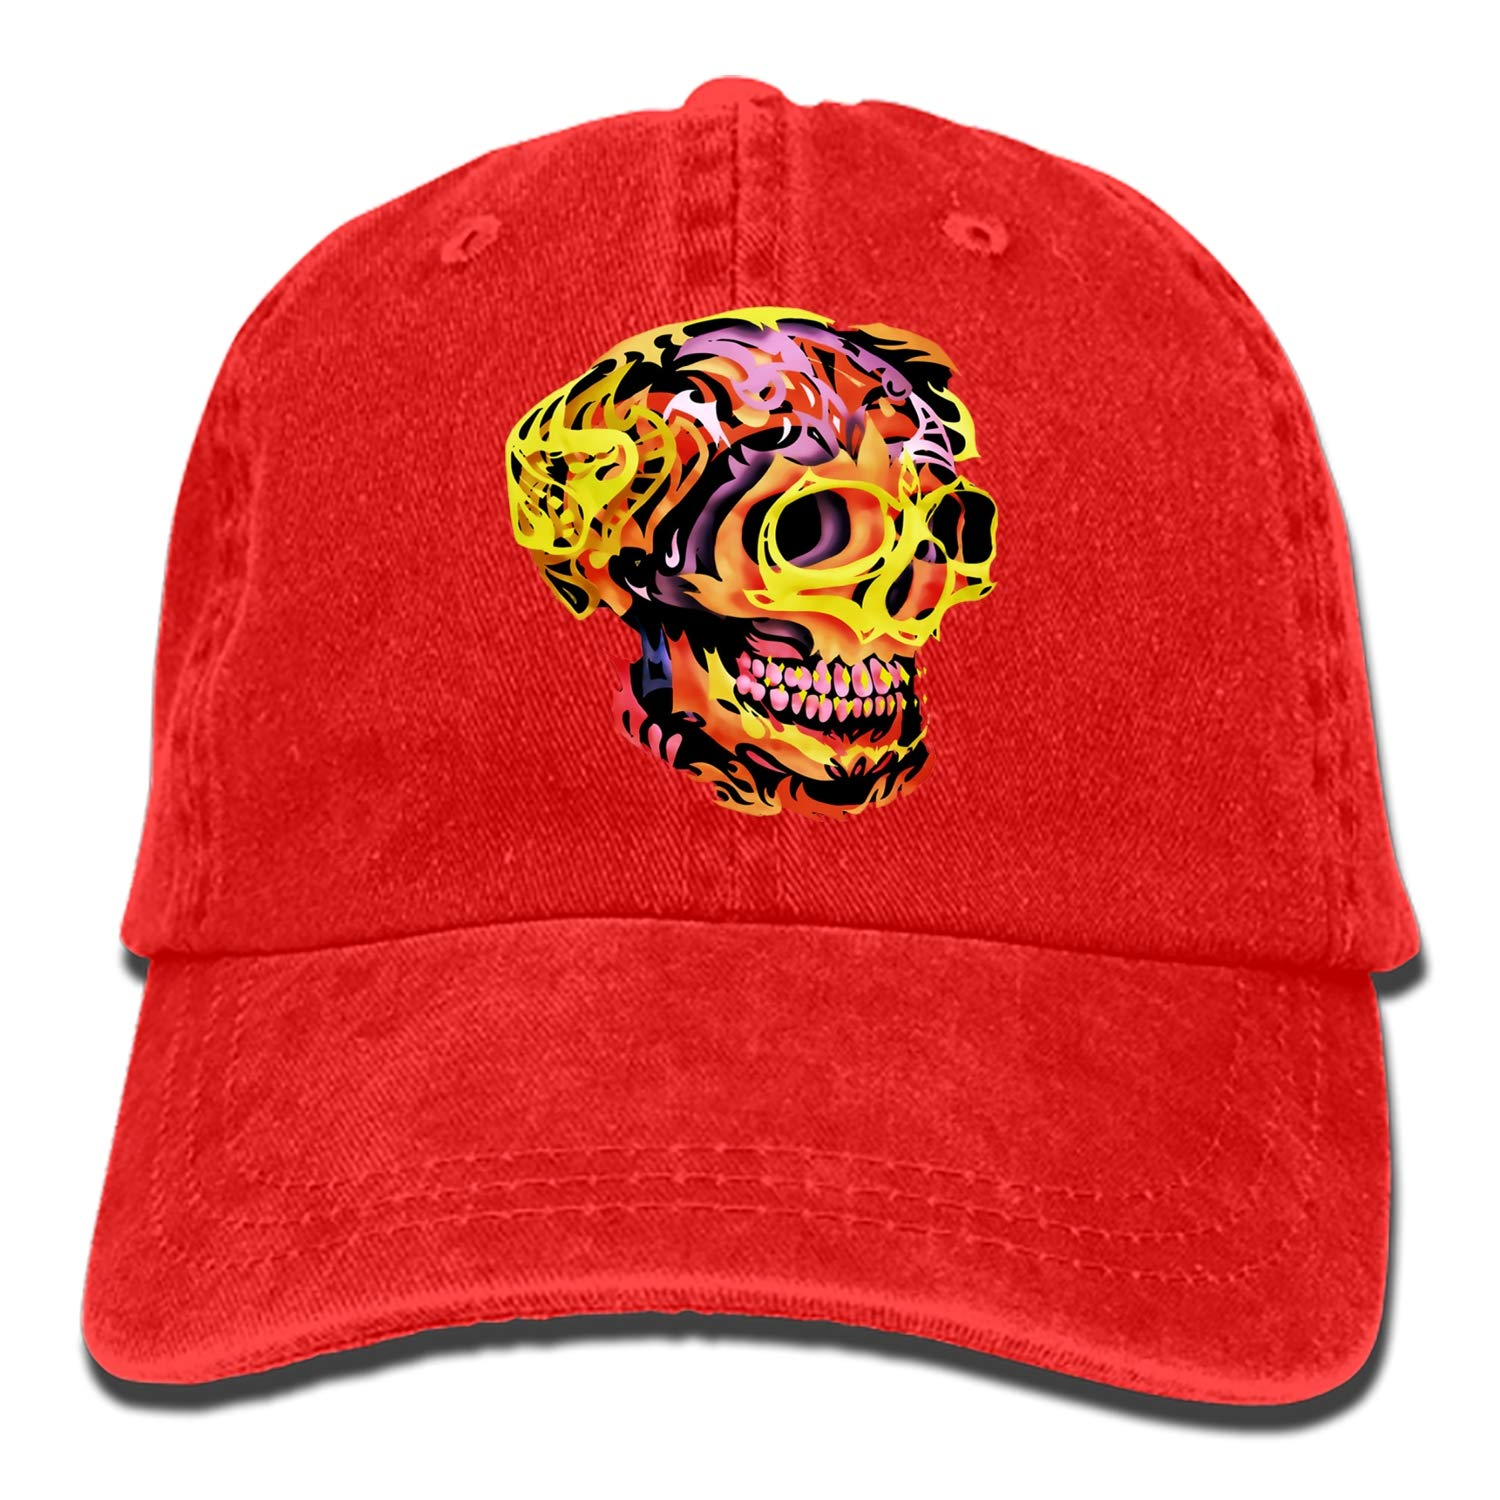 SHUANGRENDE Positive Skull Vintage Adjustable Jean Cap Gym Caps for Adult